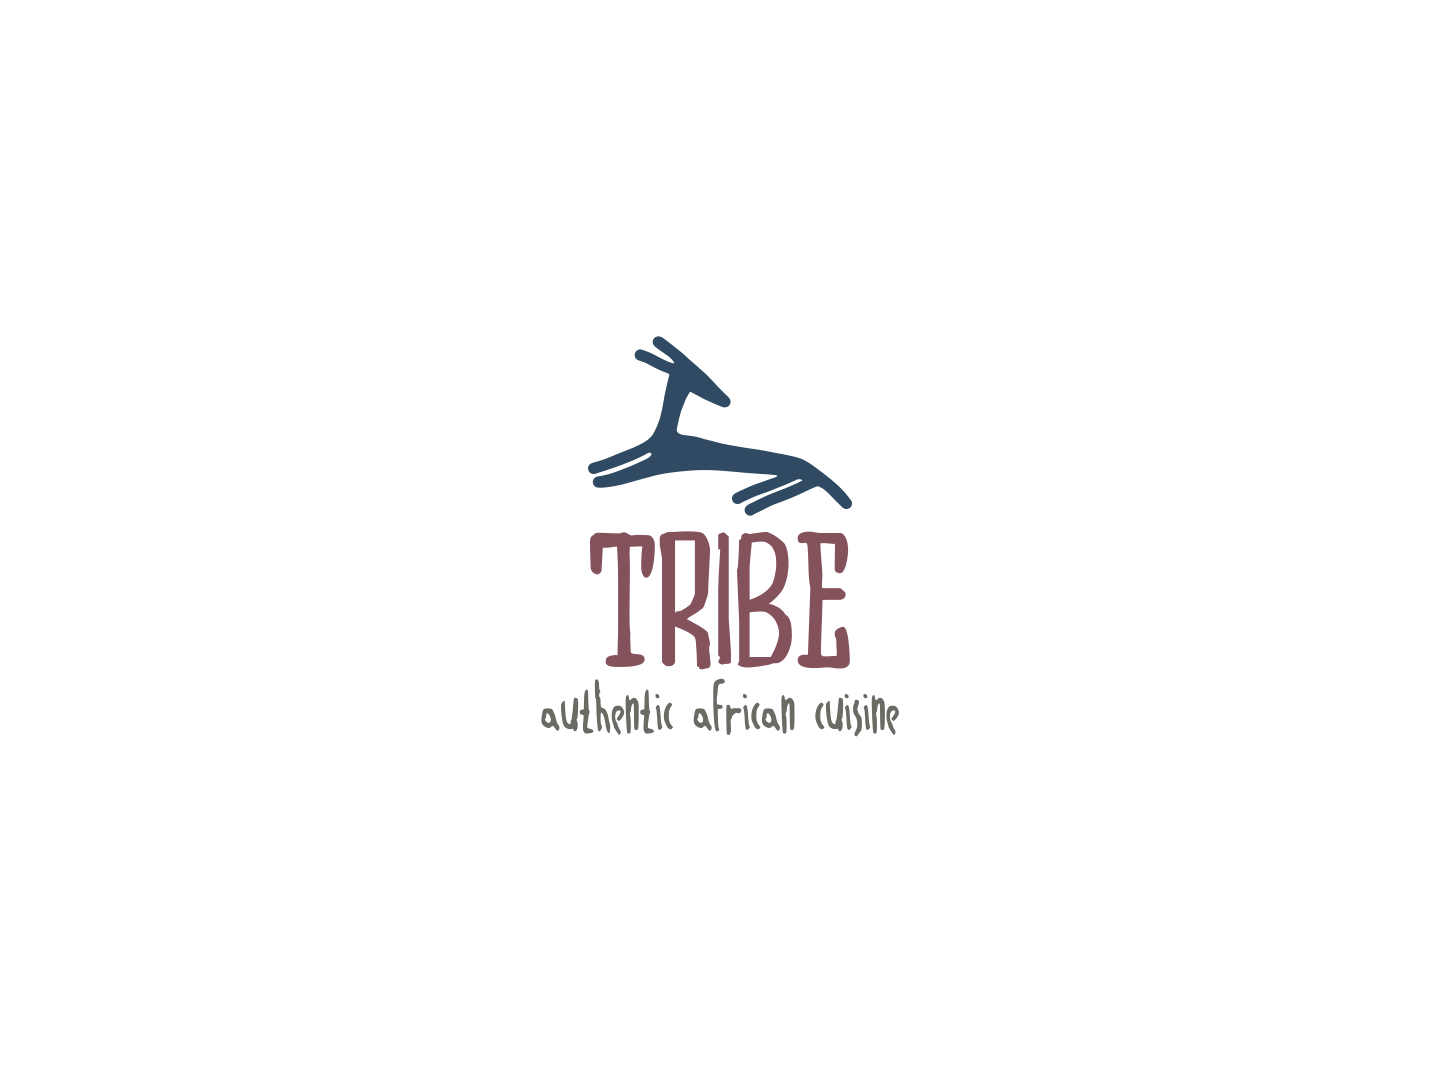 Tribe Restaurant humble cool inviting typograhy mixed fonts animal logos animal stock authentic dining cuisine african restaraunt tribe brand equity brand design branding icon